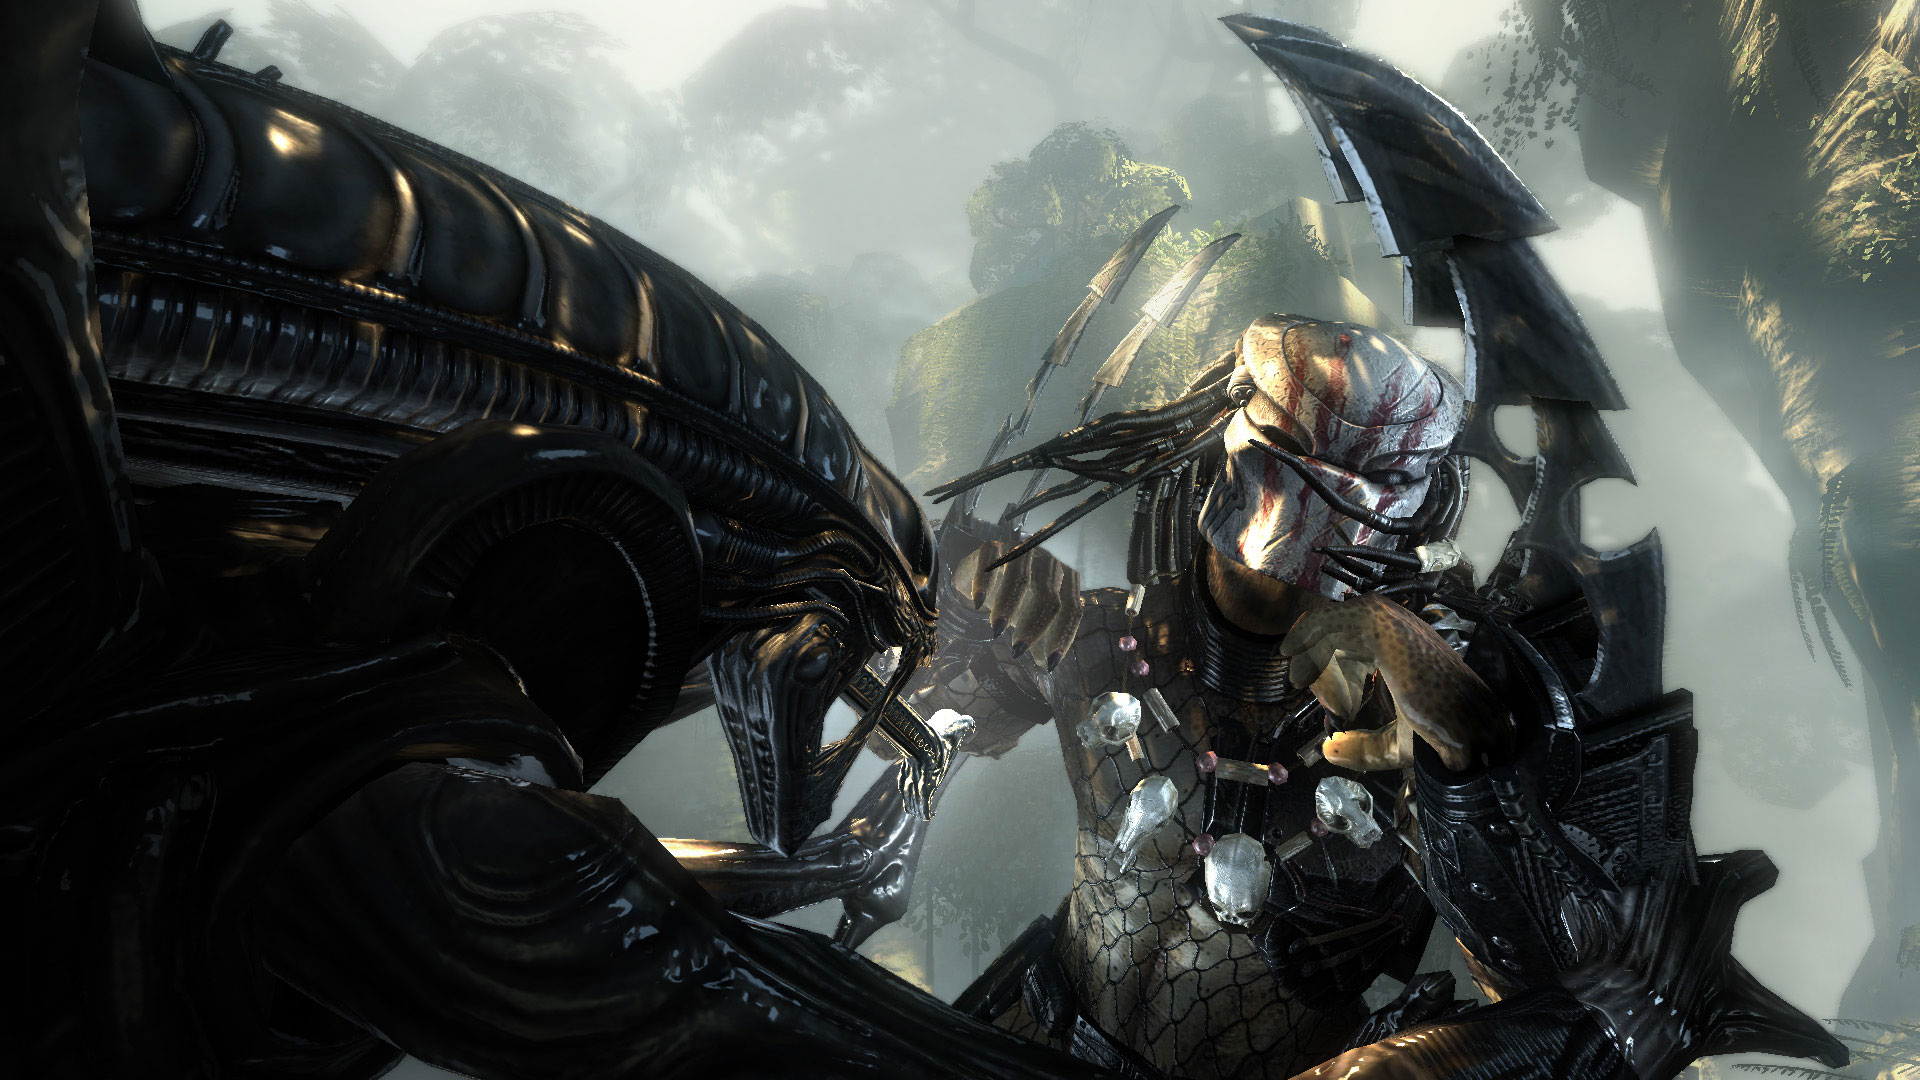 Aliens Vs. Predator Full HD Wallpaper and Background